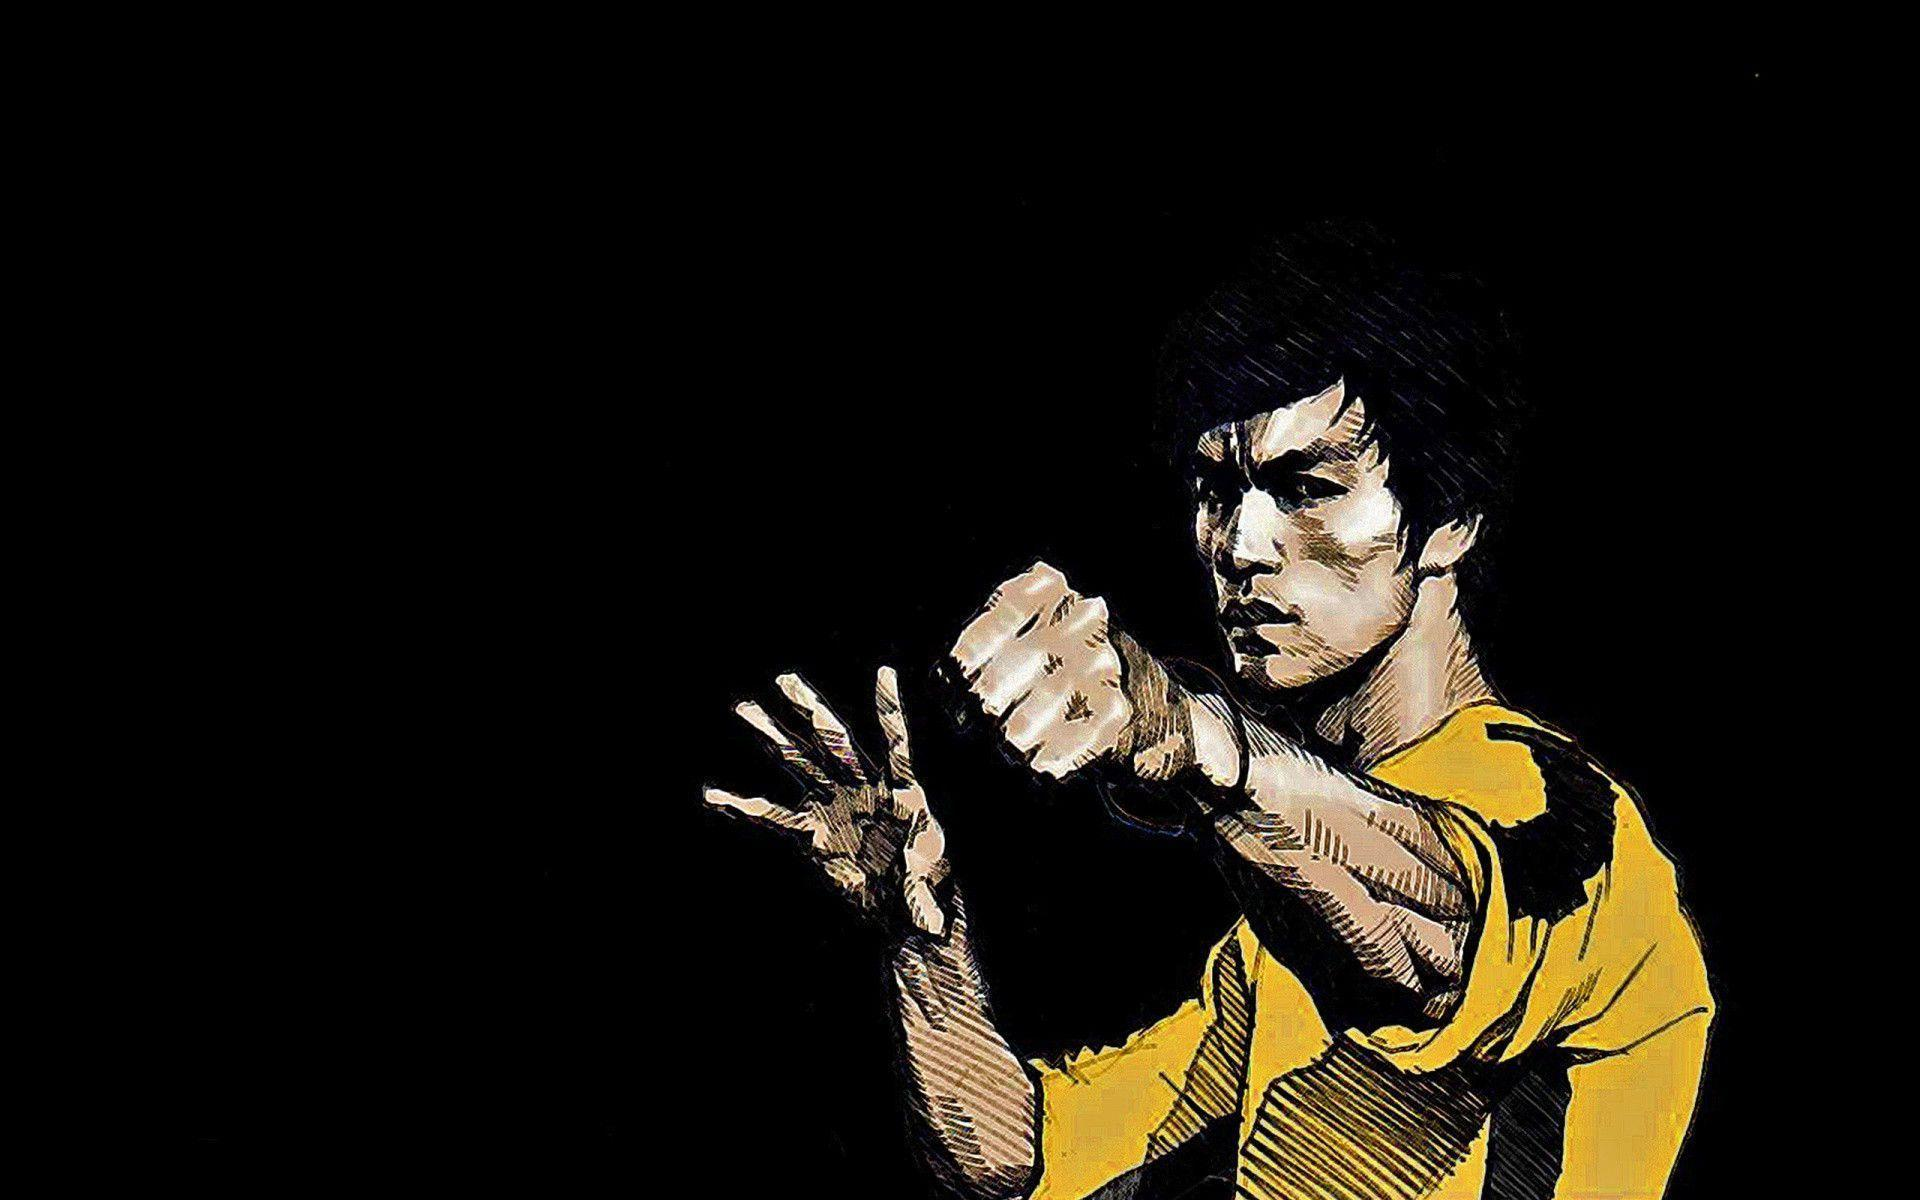 Fonds d&Bruce Lee : tous les wallpapers Bruce Lee